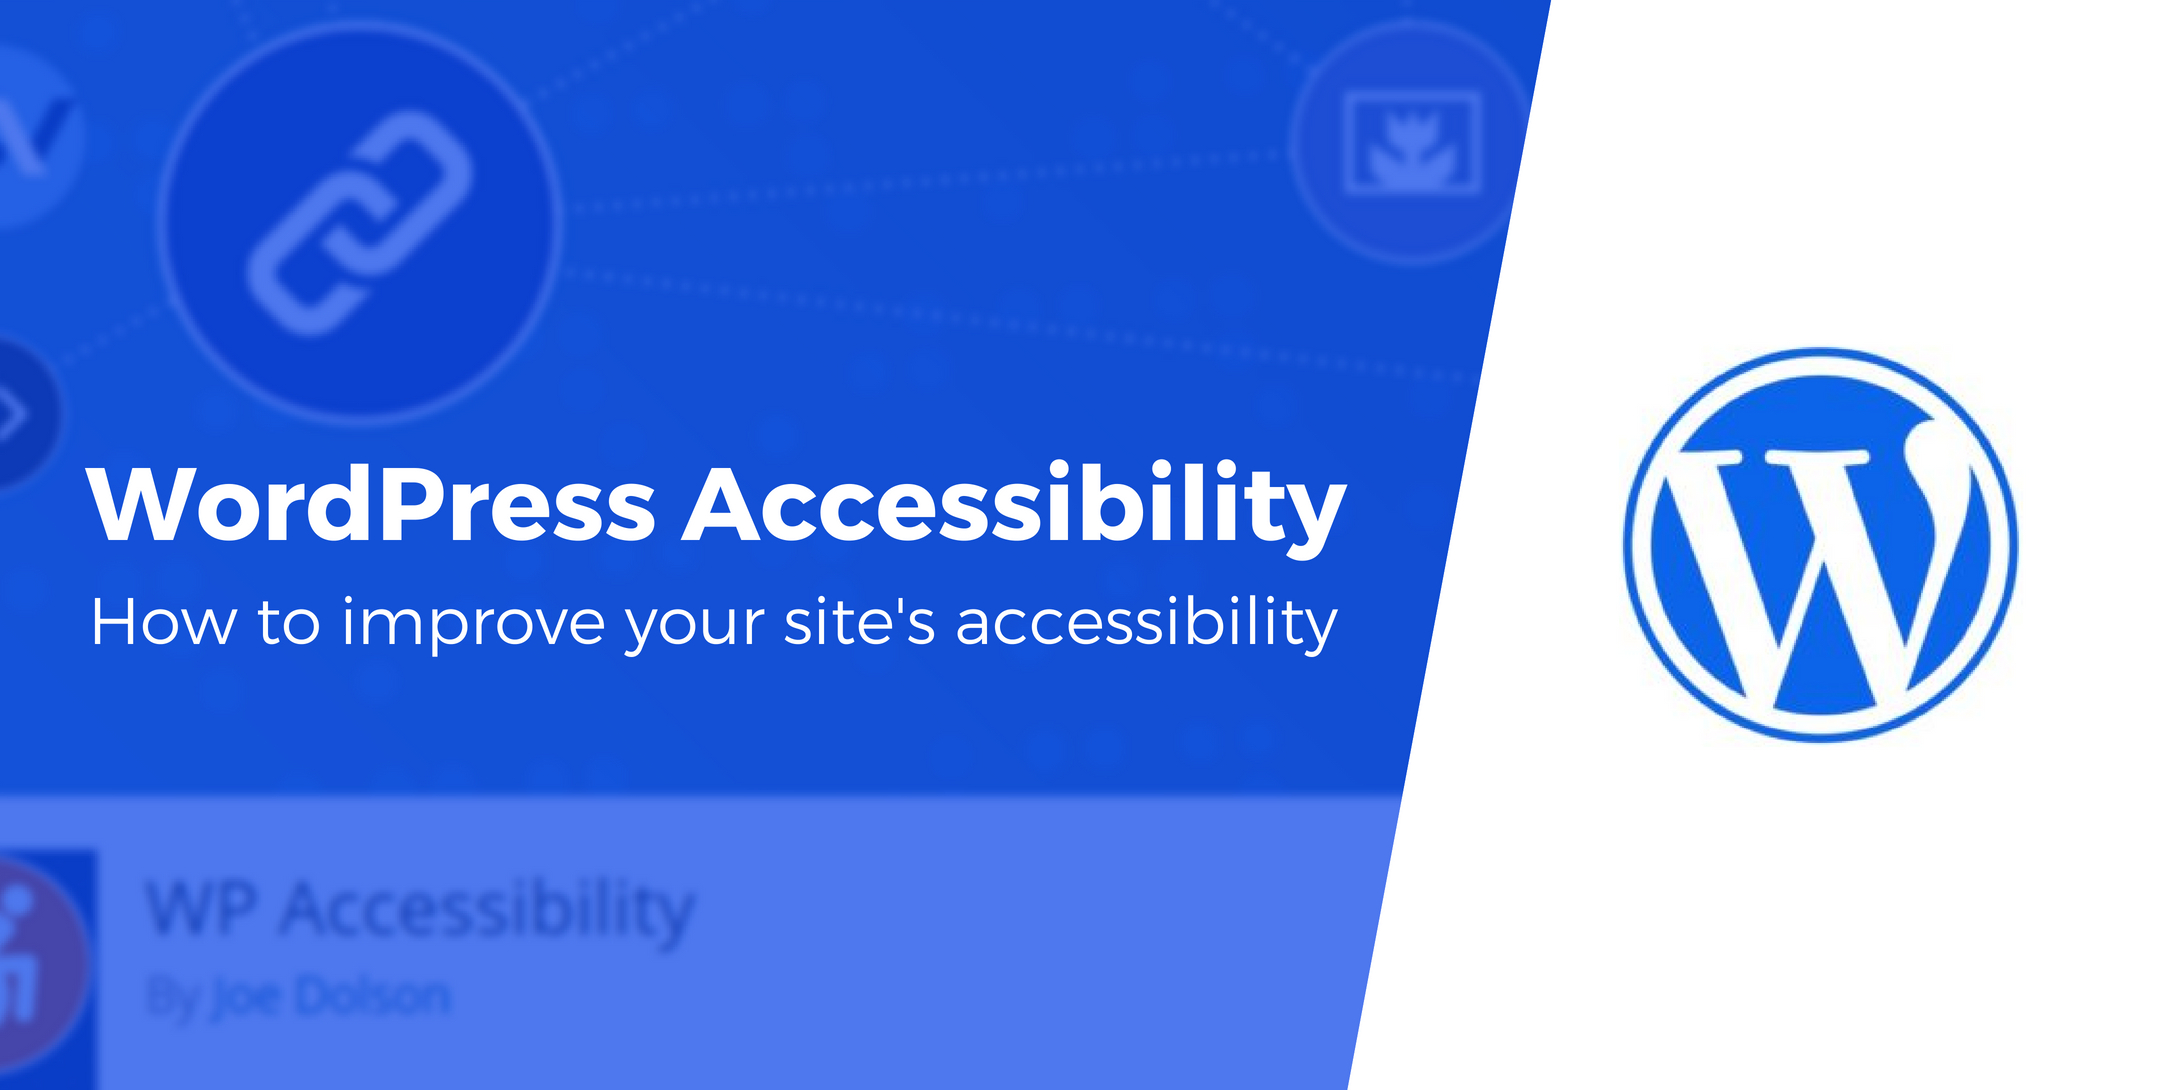 WordPress Accessibility